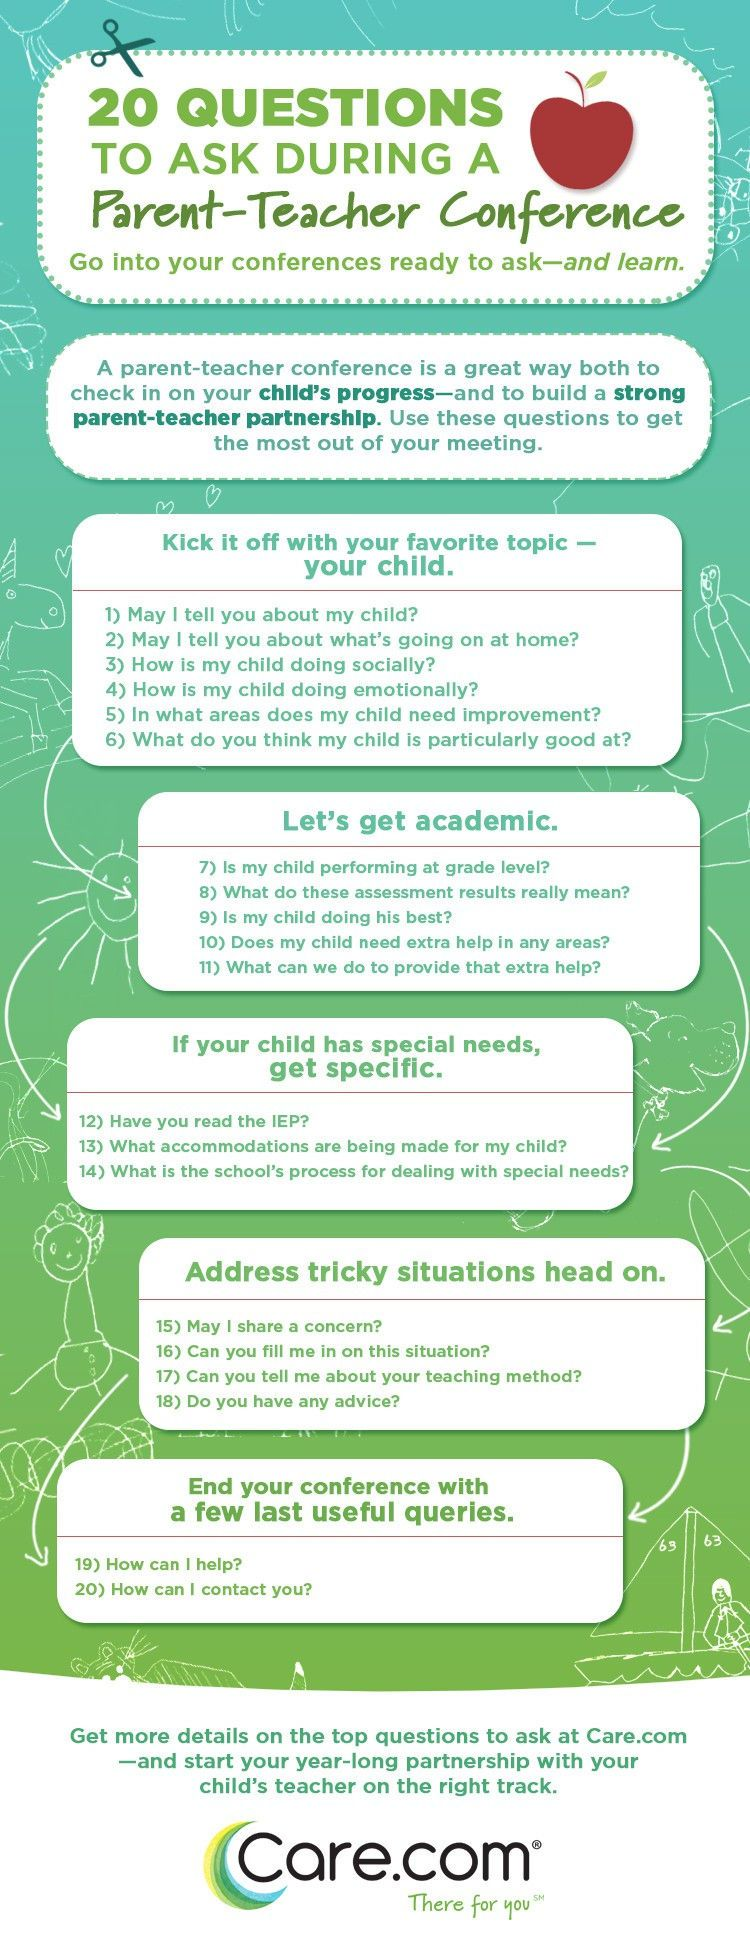 12 questions to ask during a parent-teacher conference ...